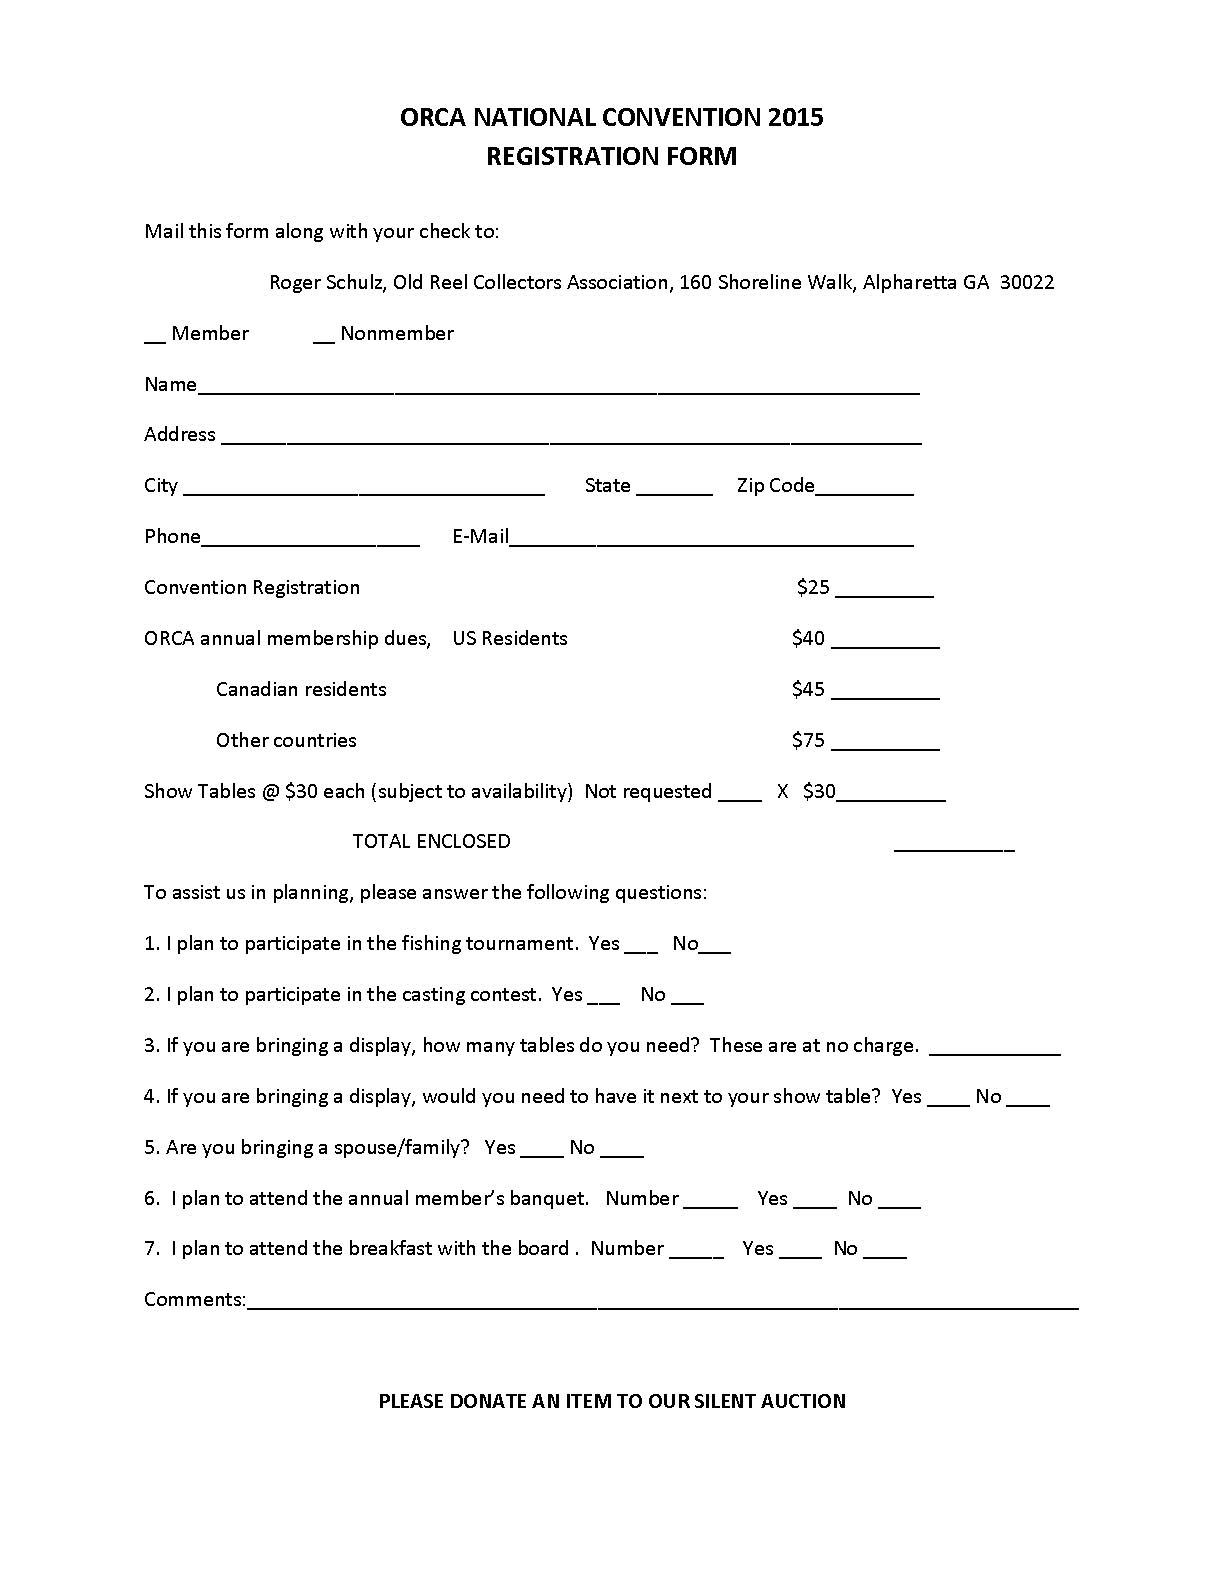 REGISTRATION_FORM_2015 Rev